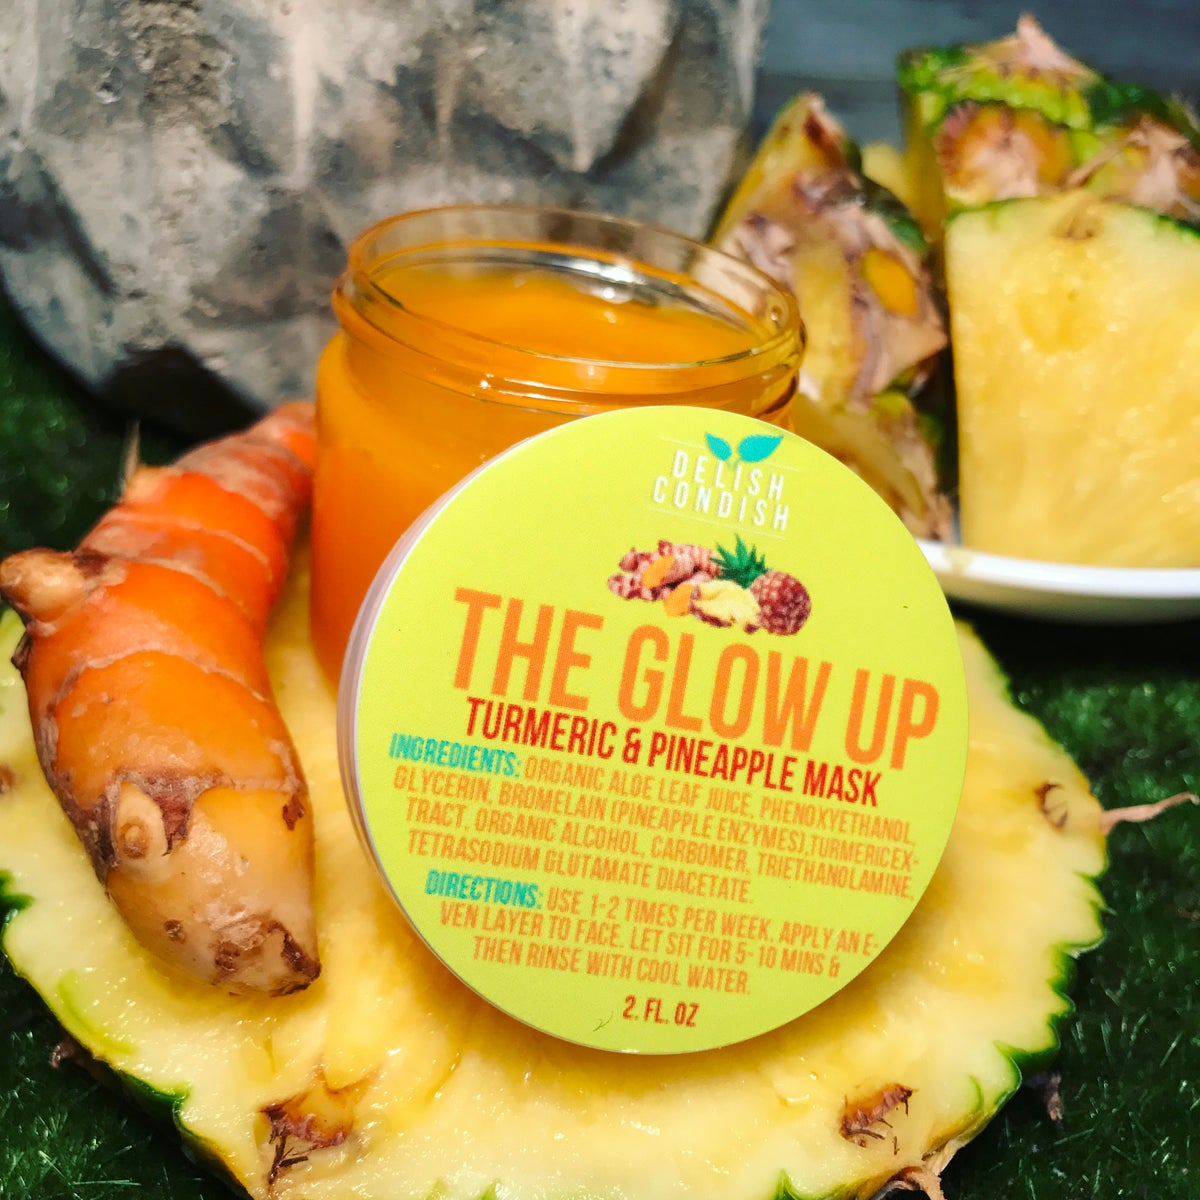 Image of The Glow Up Turmeric & Pineapple Mask